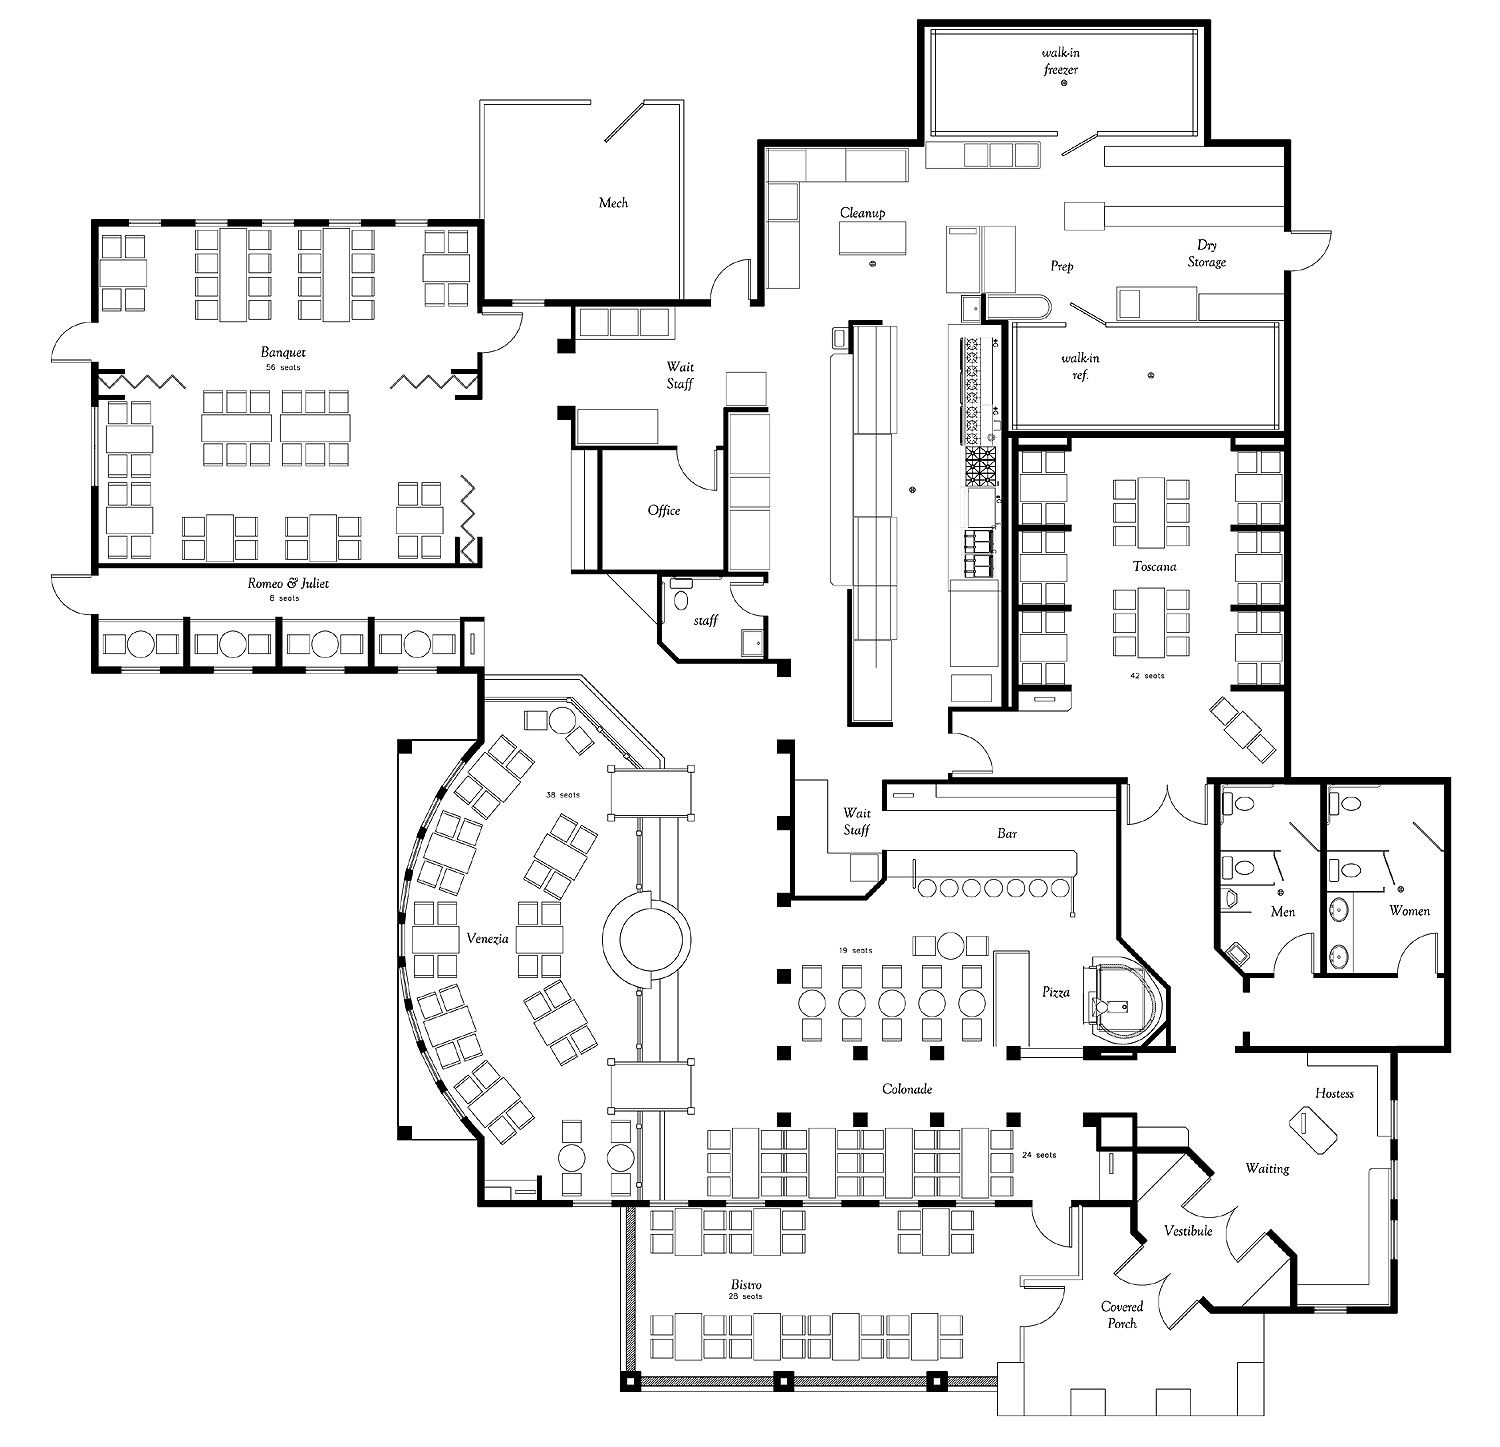 Sample Kitchen Floor Plans: Home--Floorplans: Commercial